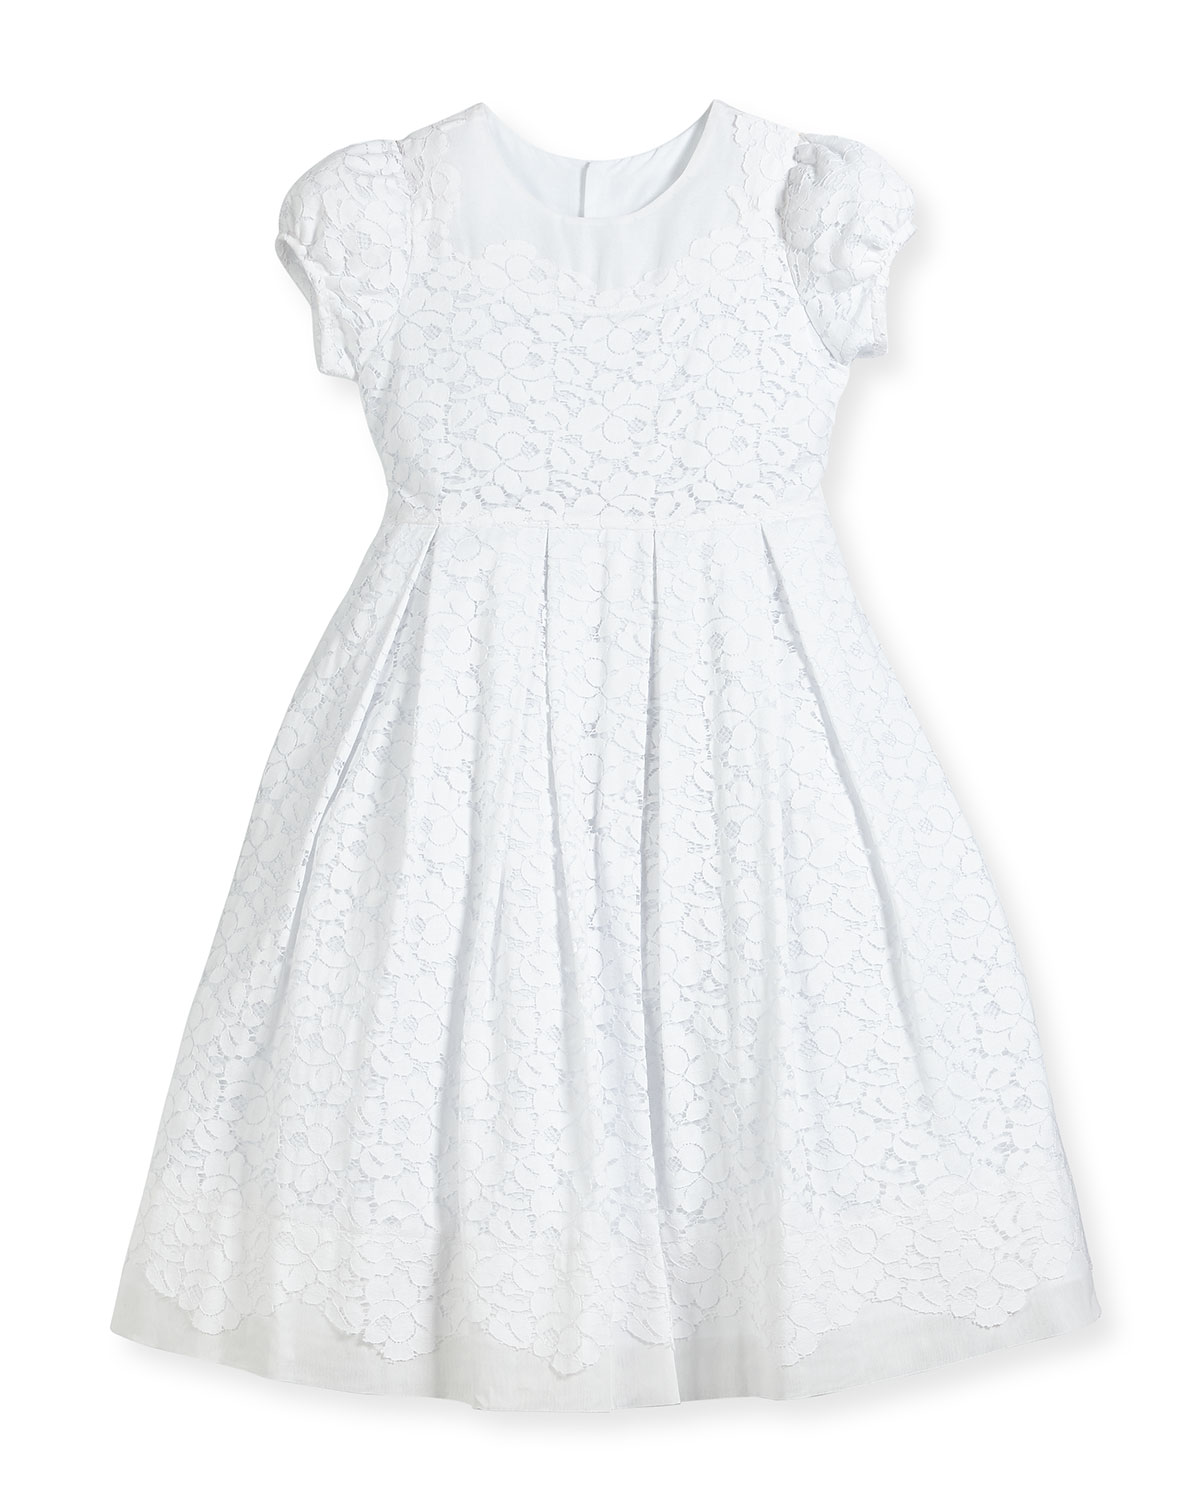 Isabel Garreton Gala Organdy Lace Dress, Size 2-3